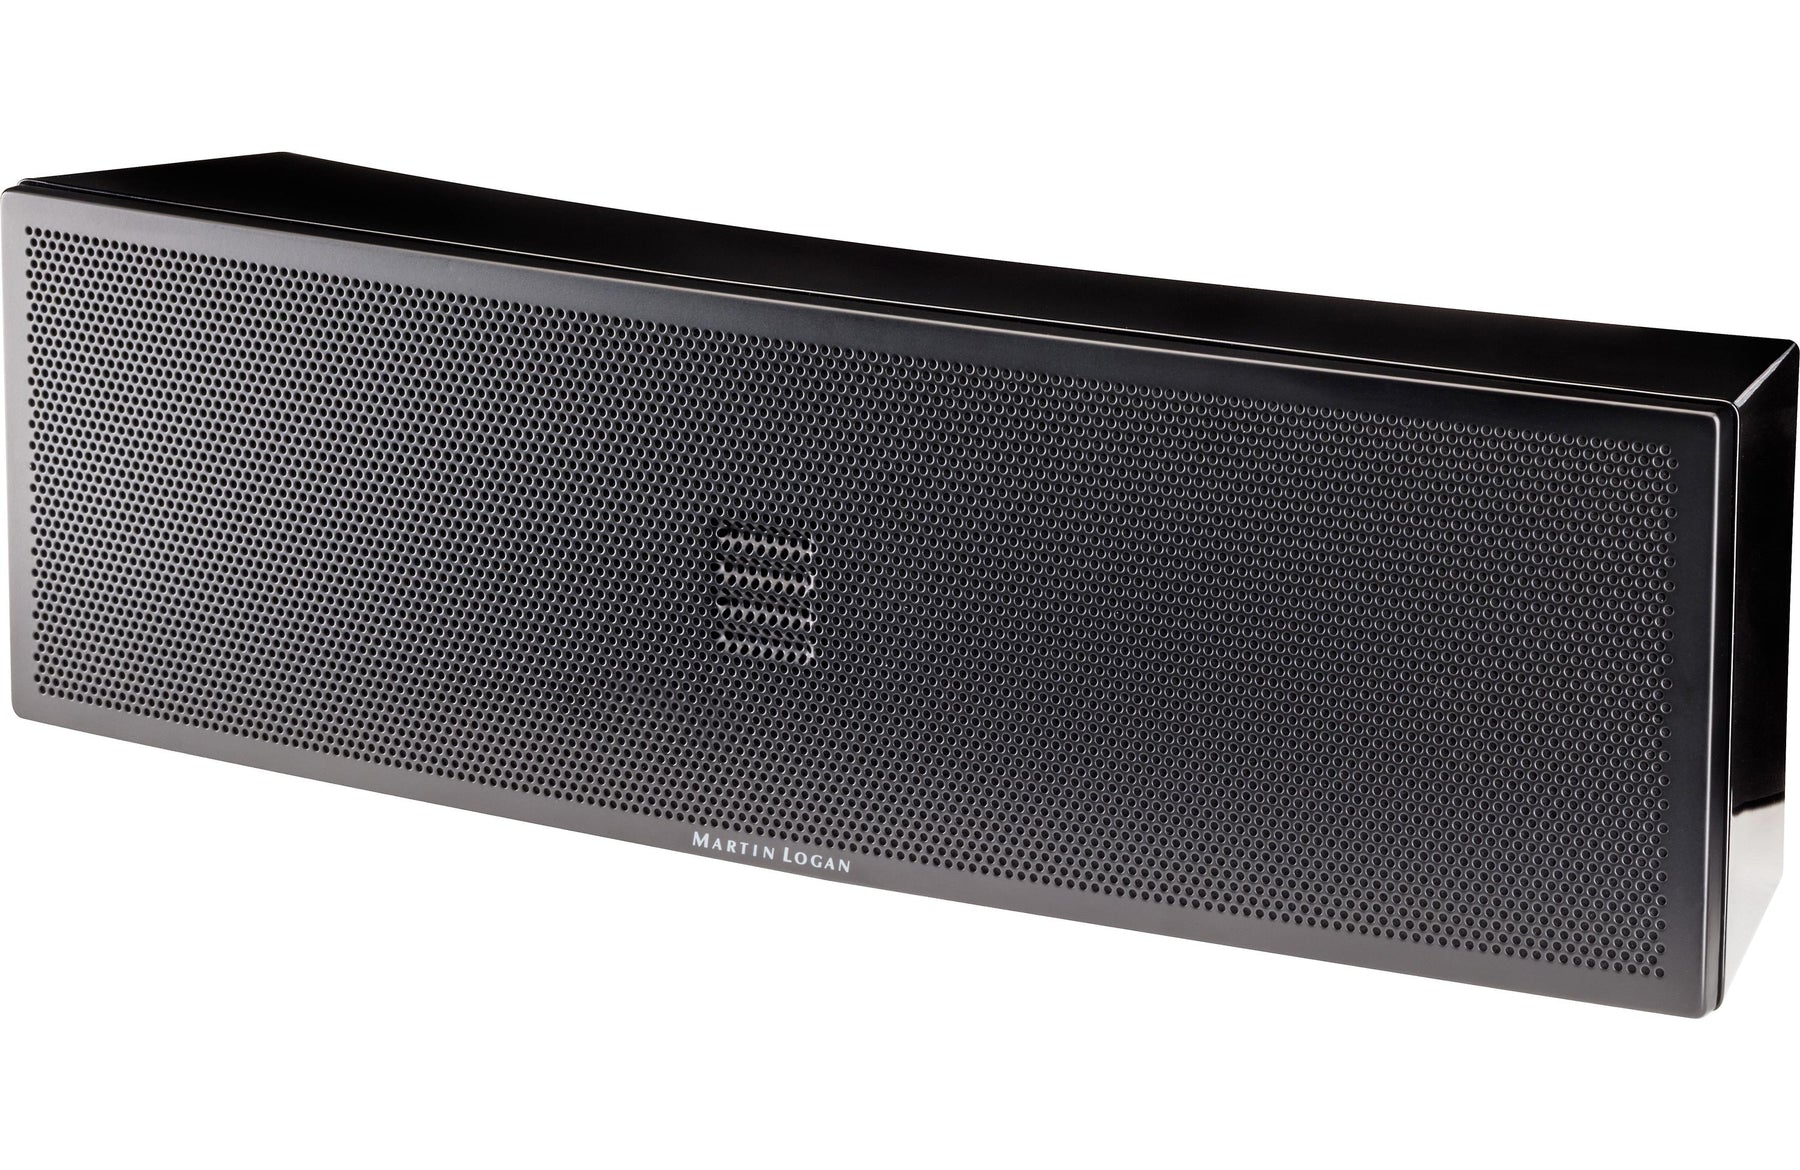 Martin Logan Motion 6i Compact Center Channel Speaker (Each) - Safe and Sound HQ